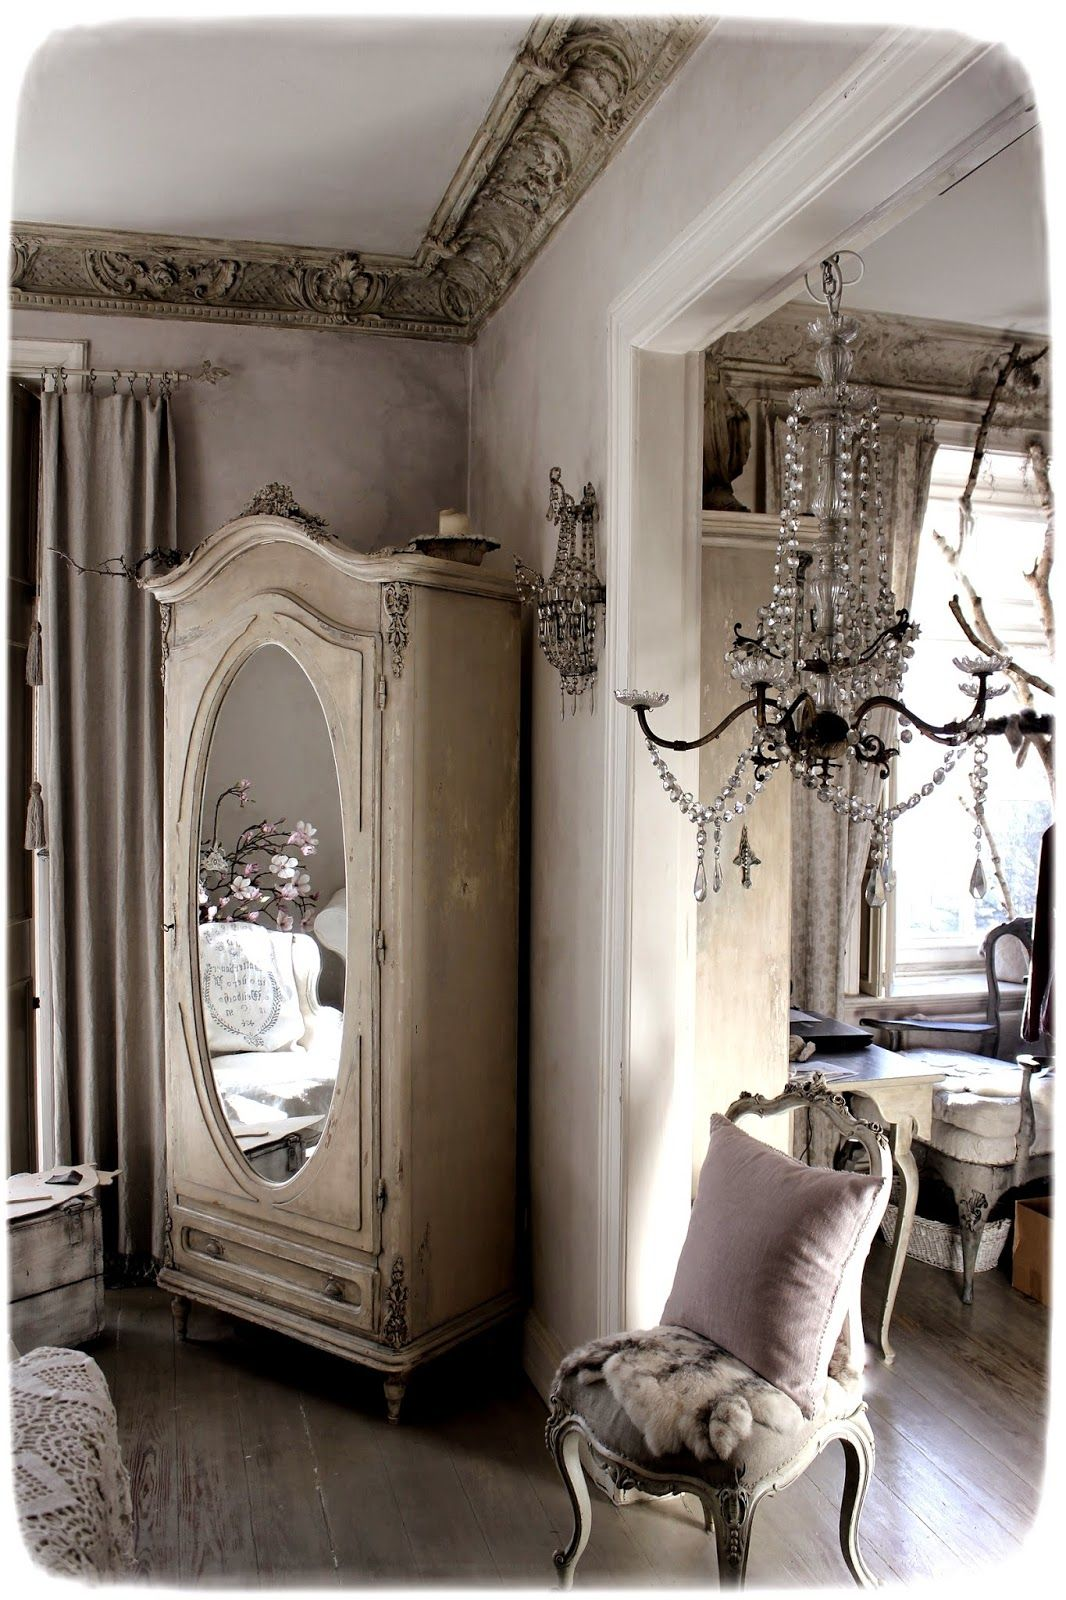 Vintage Home Interior Design: Méas Vintage And So Very French! #decor #interiors